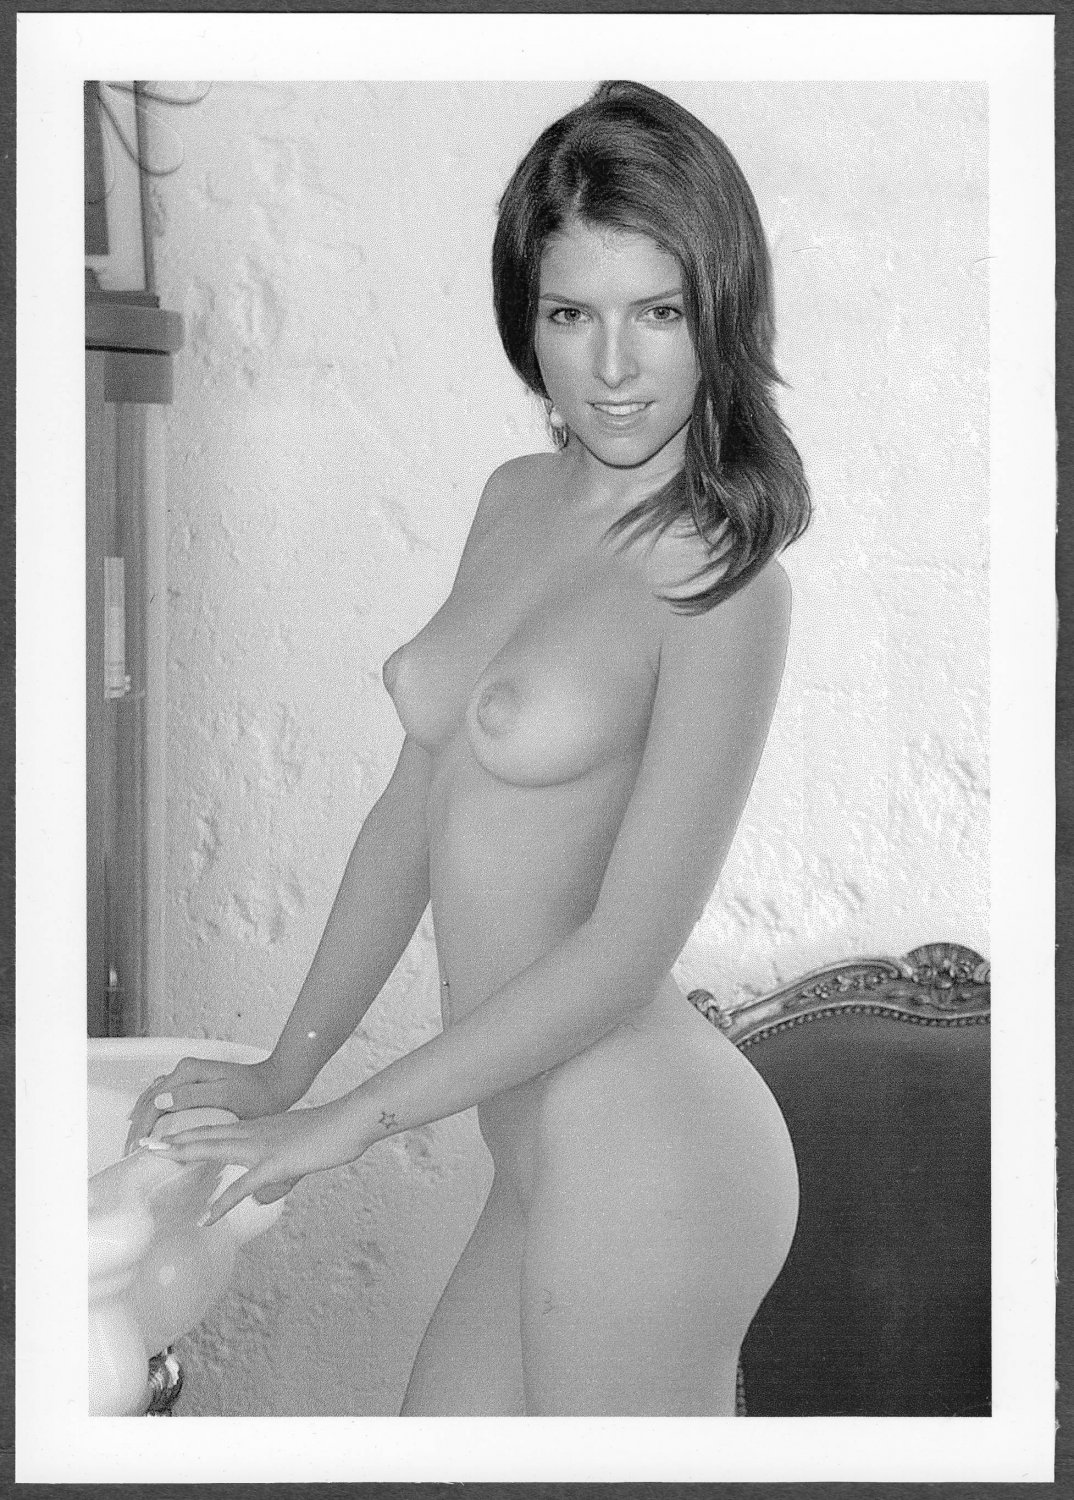 ANNA KENDRICK TOTALLY NUDE BIG LARGE BREASTS SHAVED PUSSY NEW REPRINT 5 X 7 #10